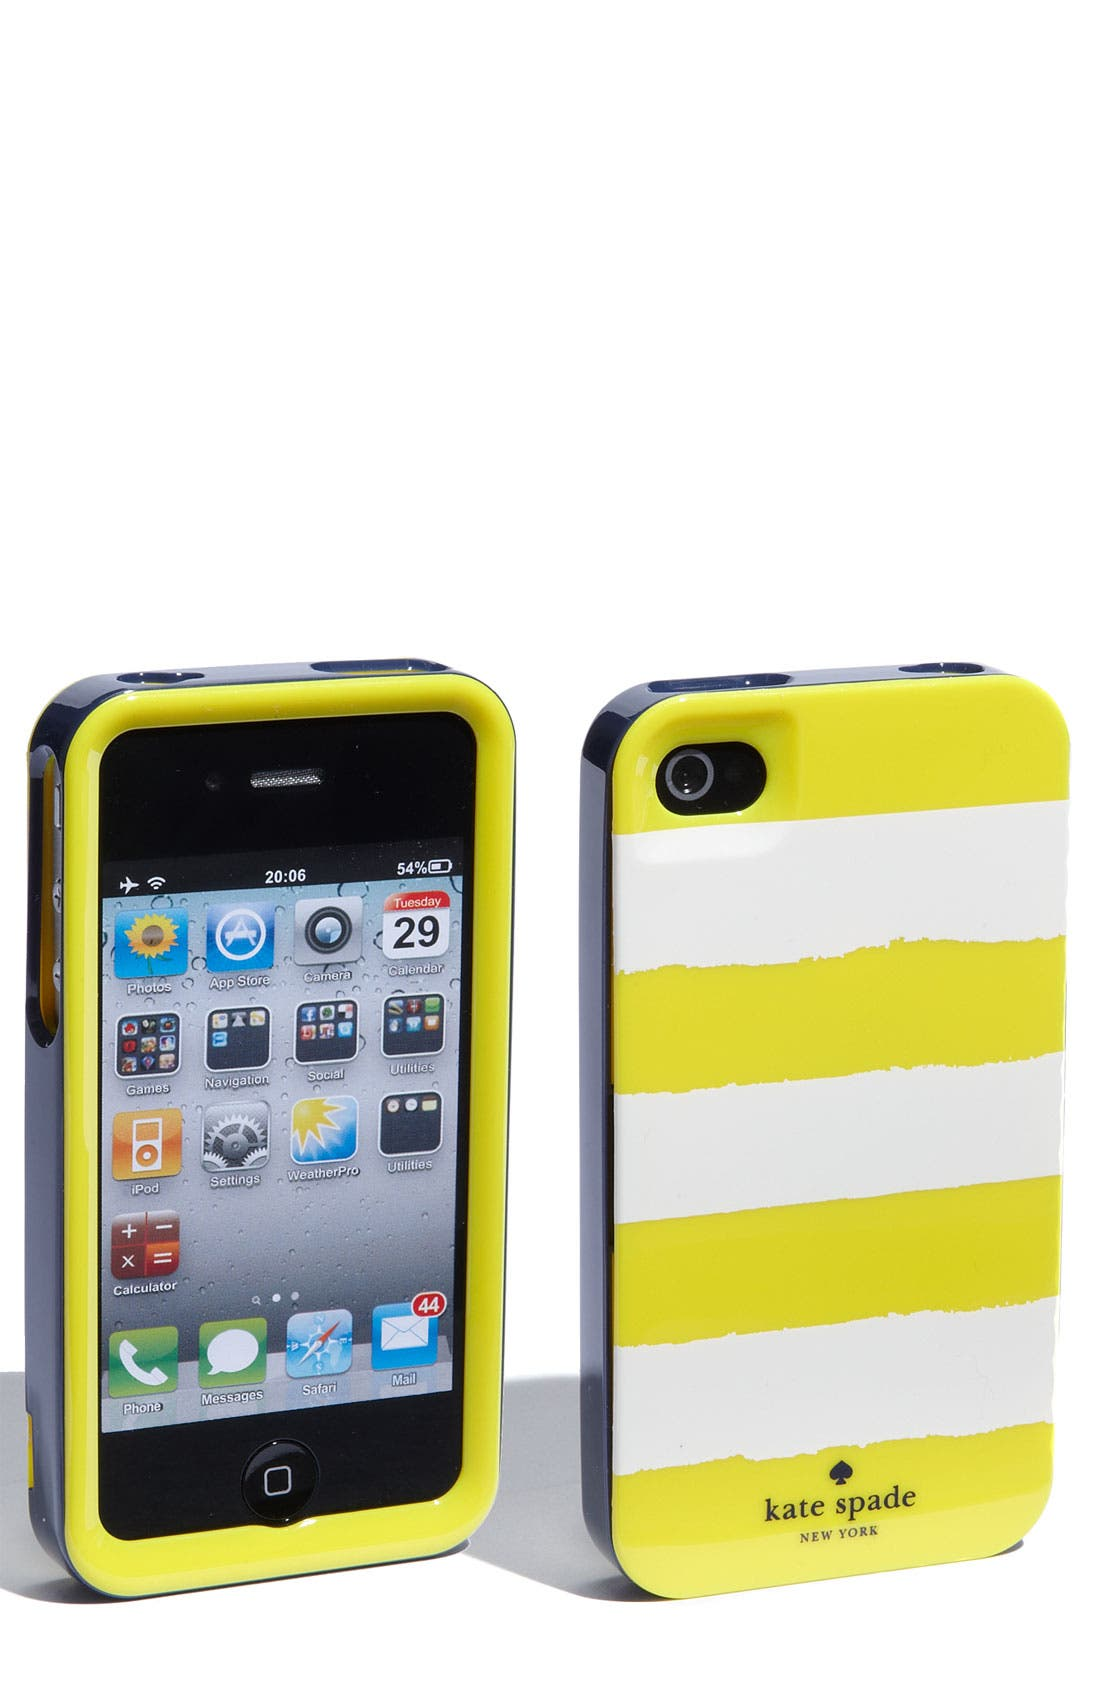 Main Image - kate spade new york 'rugby' iPhone 4 & 4S case